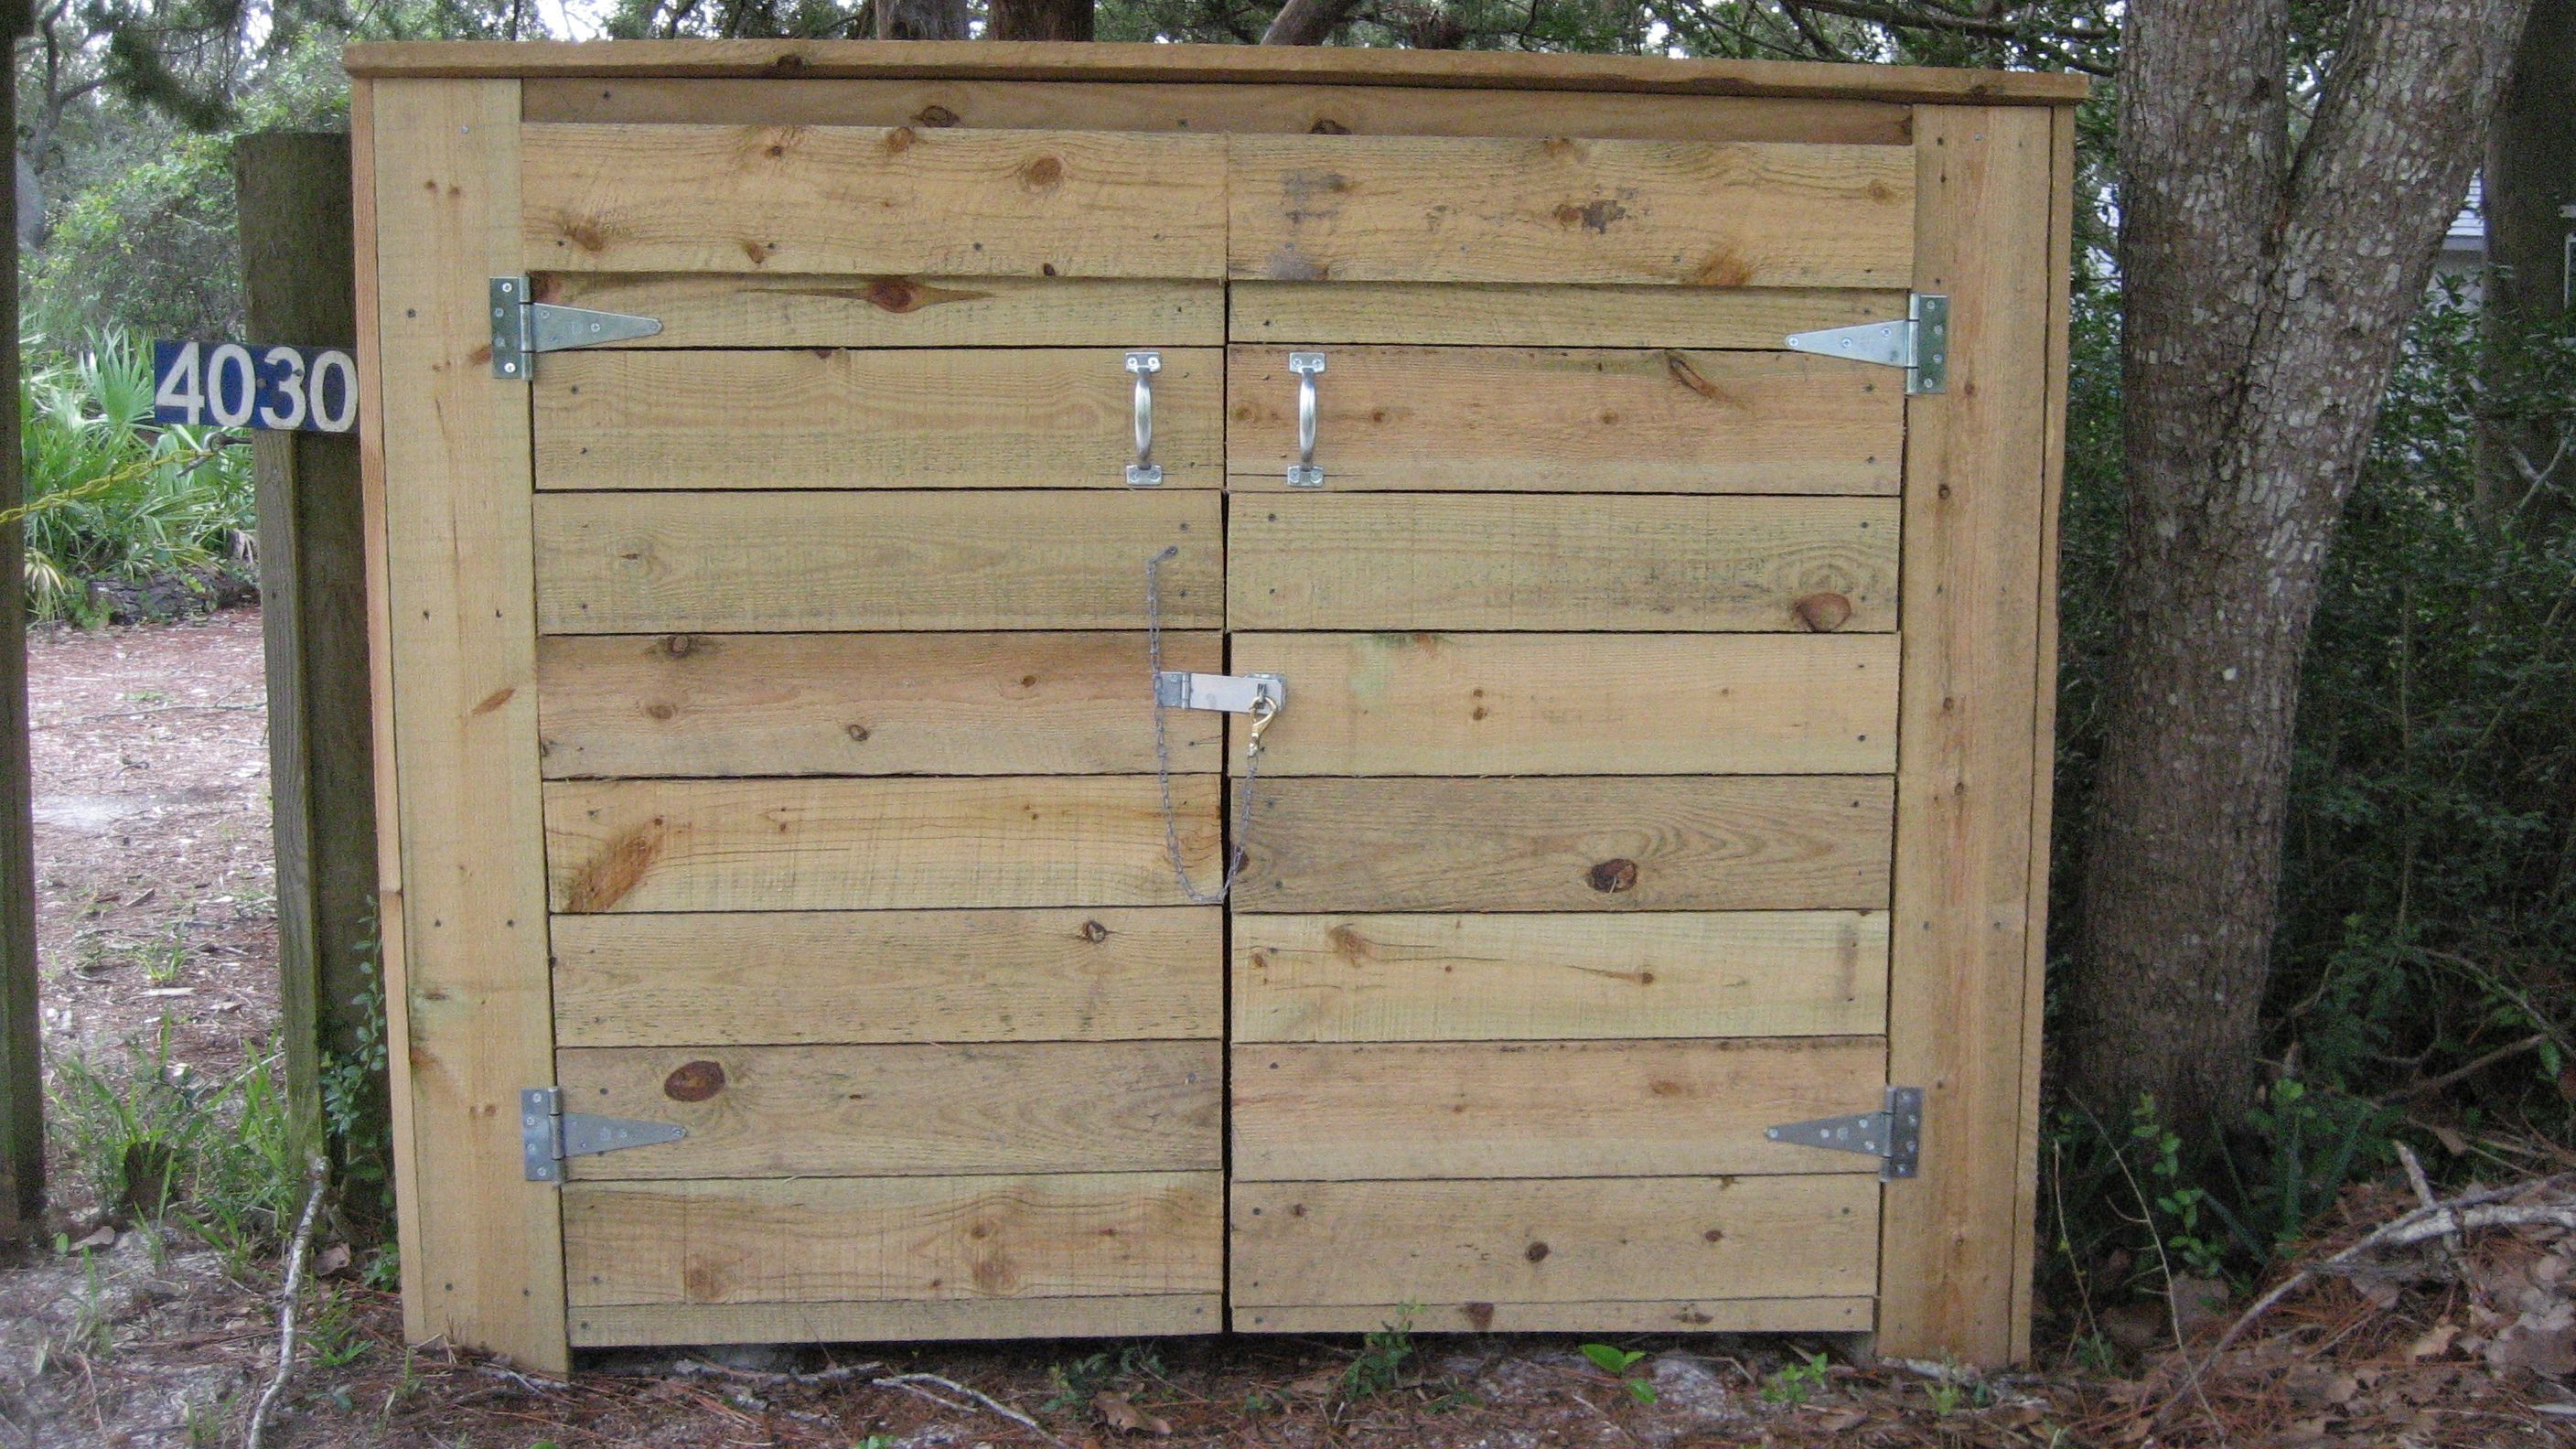 How to build a bear resistant shed for your garbage cans ...